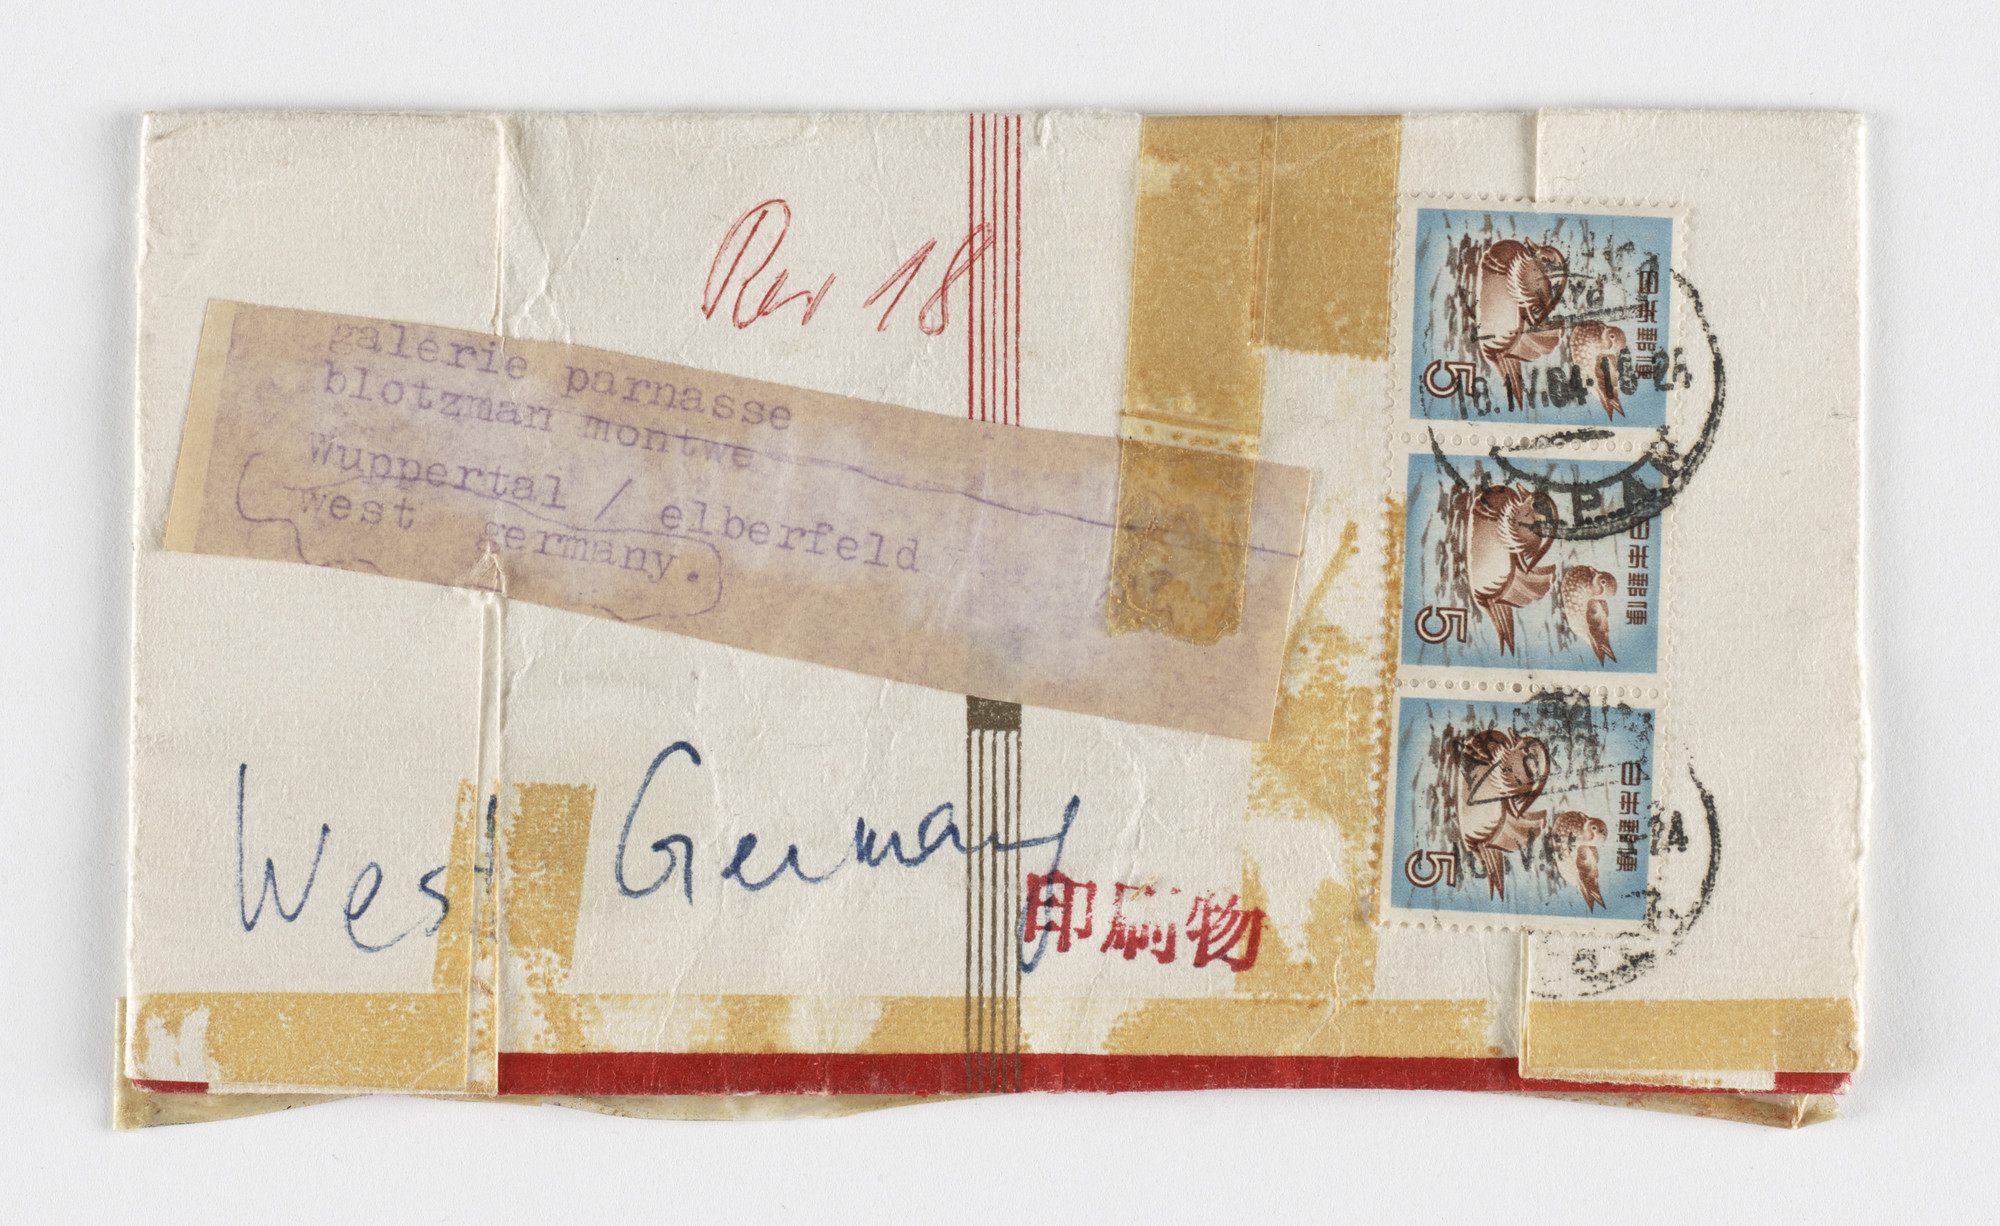 Nam June Paik. The Monthly Review of the University for Avant-garde Hinduism mailing (1 Cent Coin in Envelope). 1964